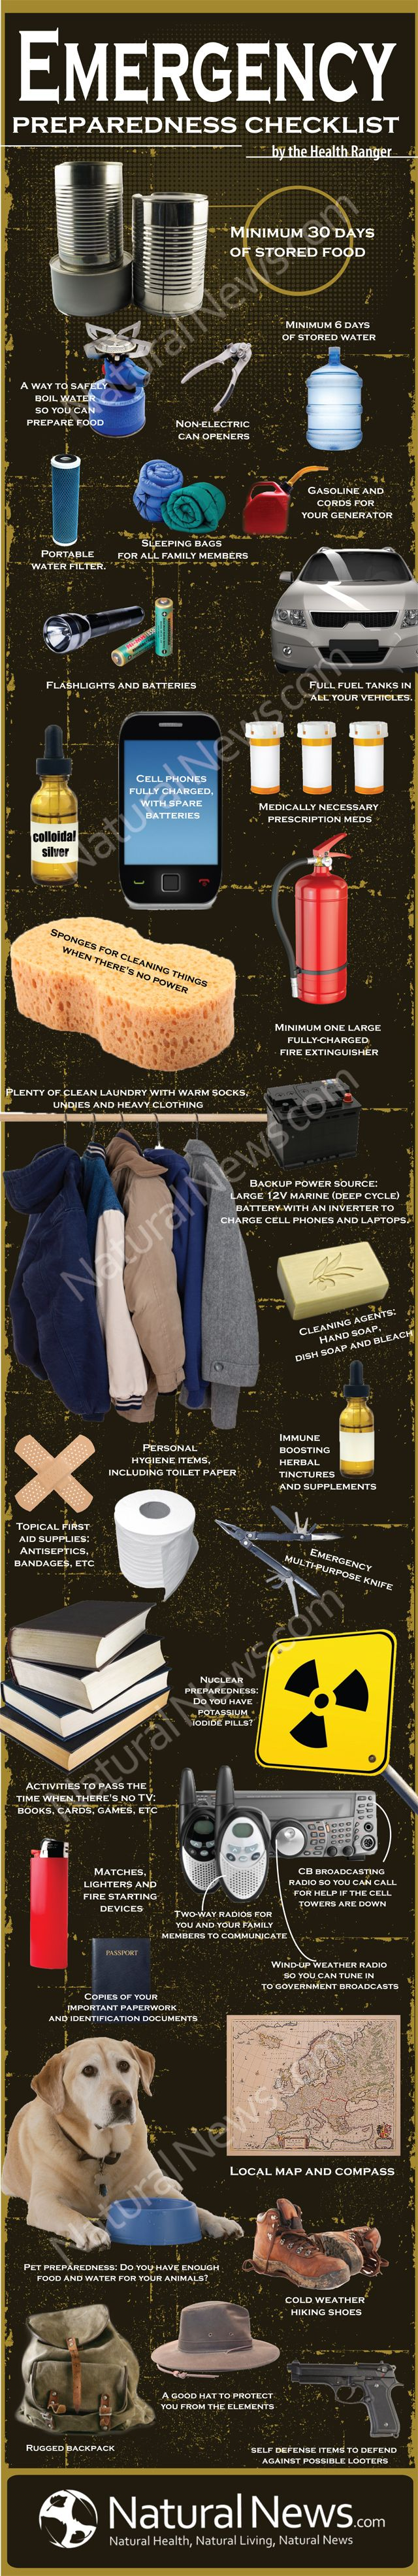 Emergency Preparedness Checklist~ for the survivalist who is not yet prepared to live off the wild.